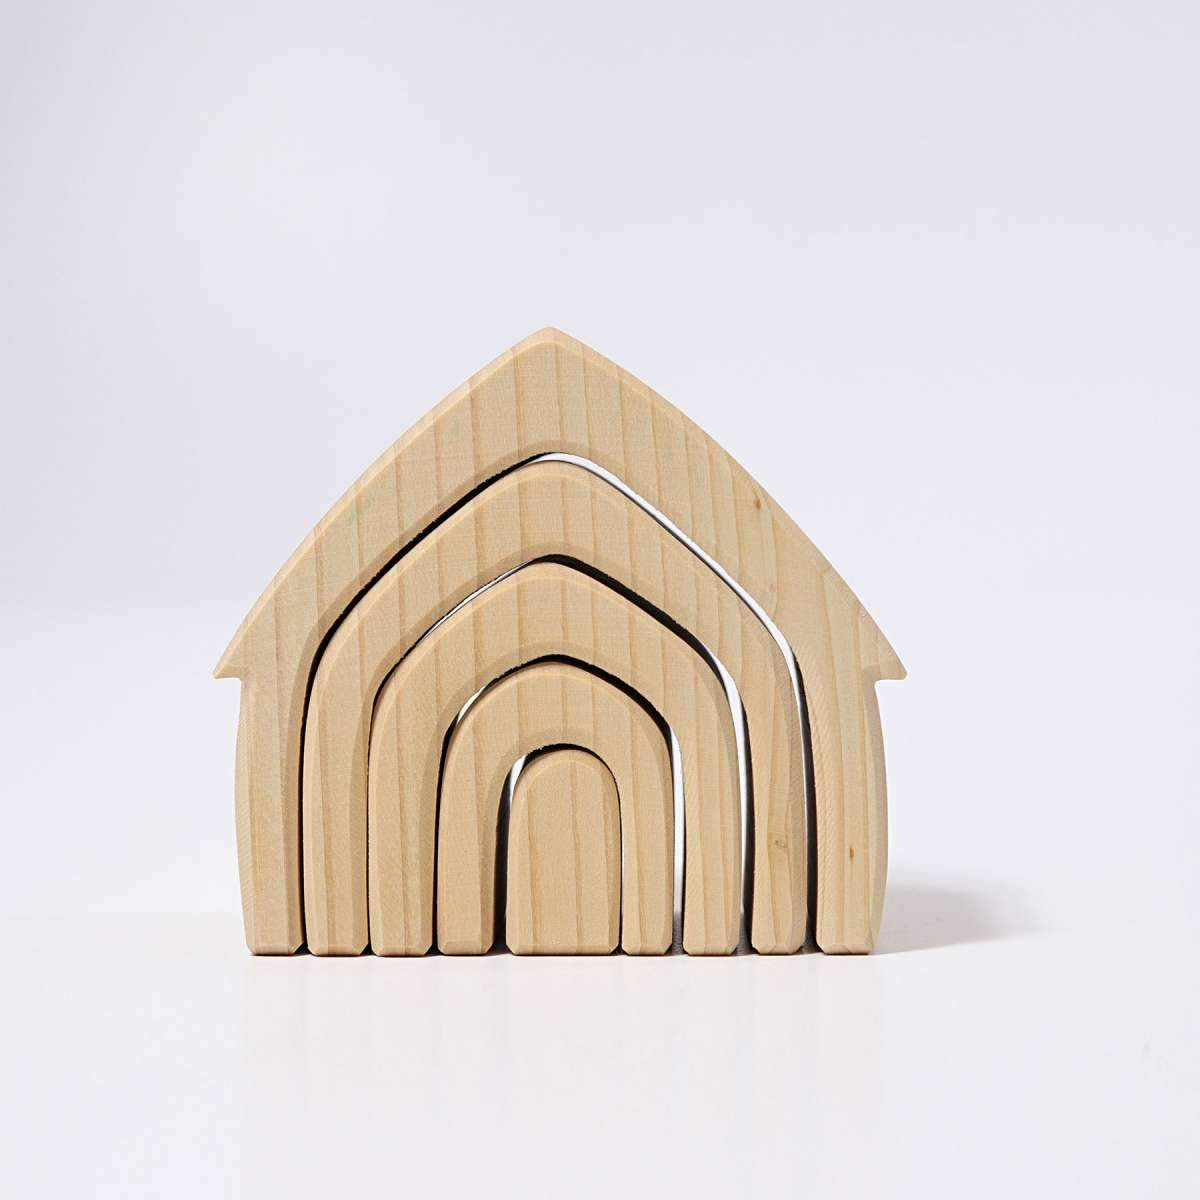 Grimms Natural Stacking House Grimms Wooden Toys at Little Earth Nest Eco Shop